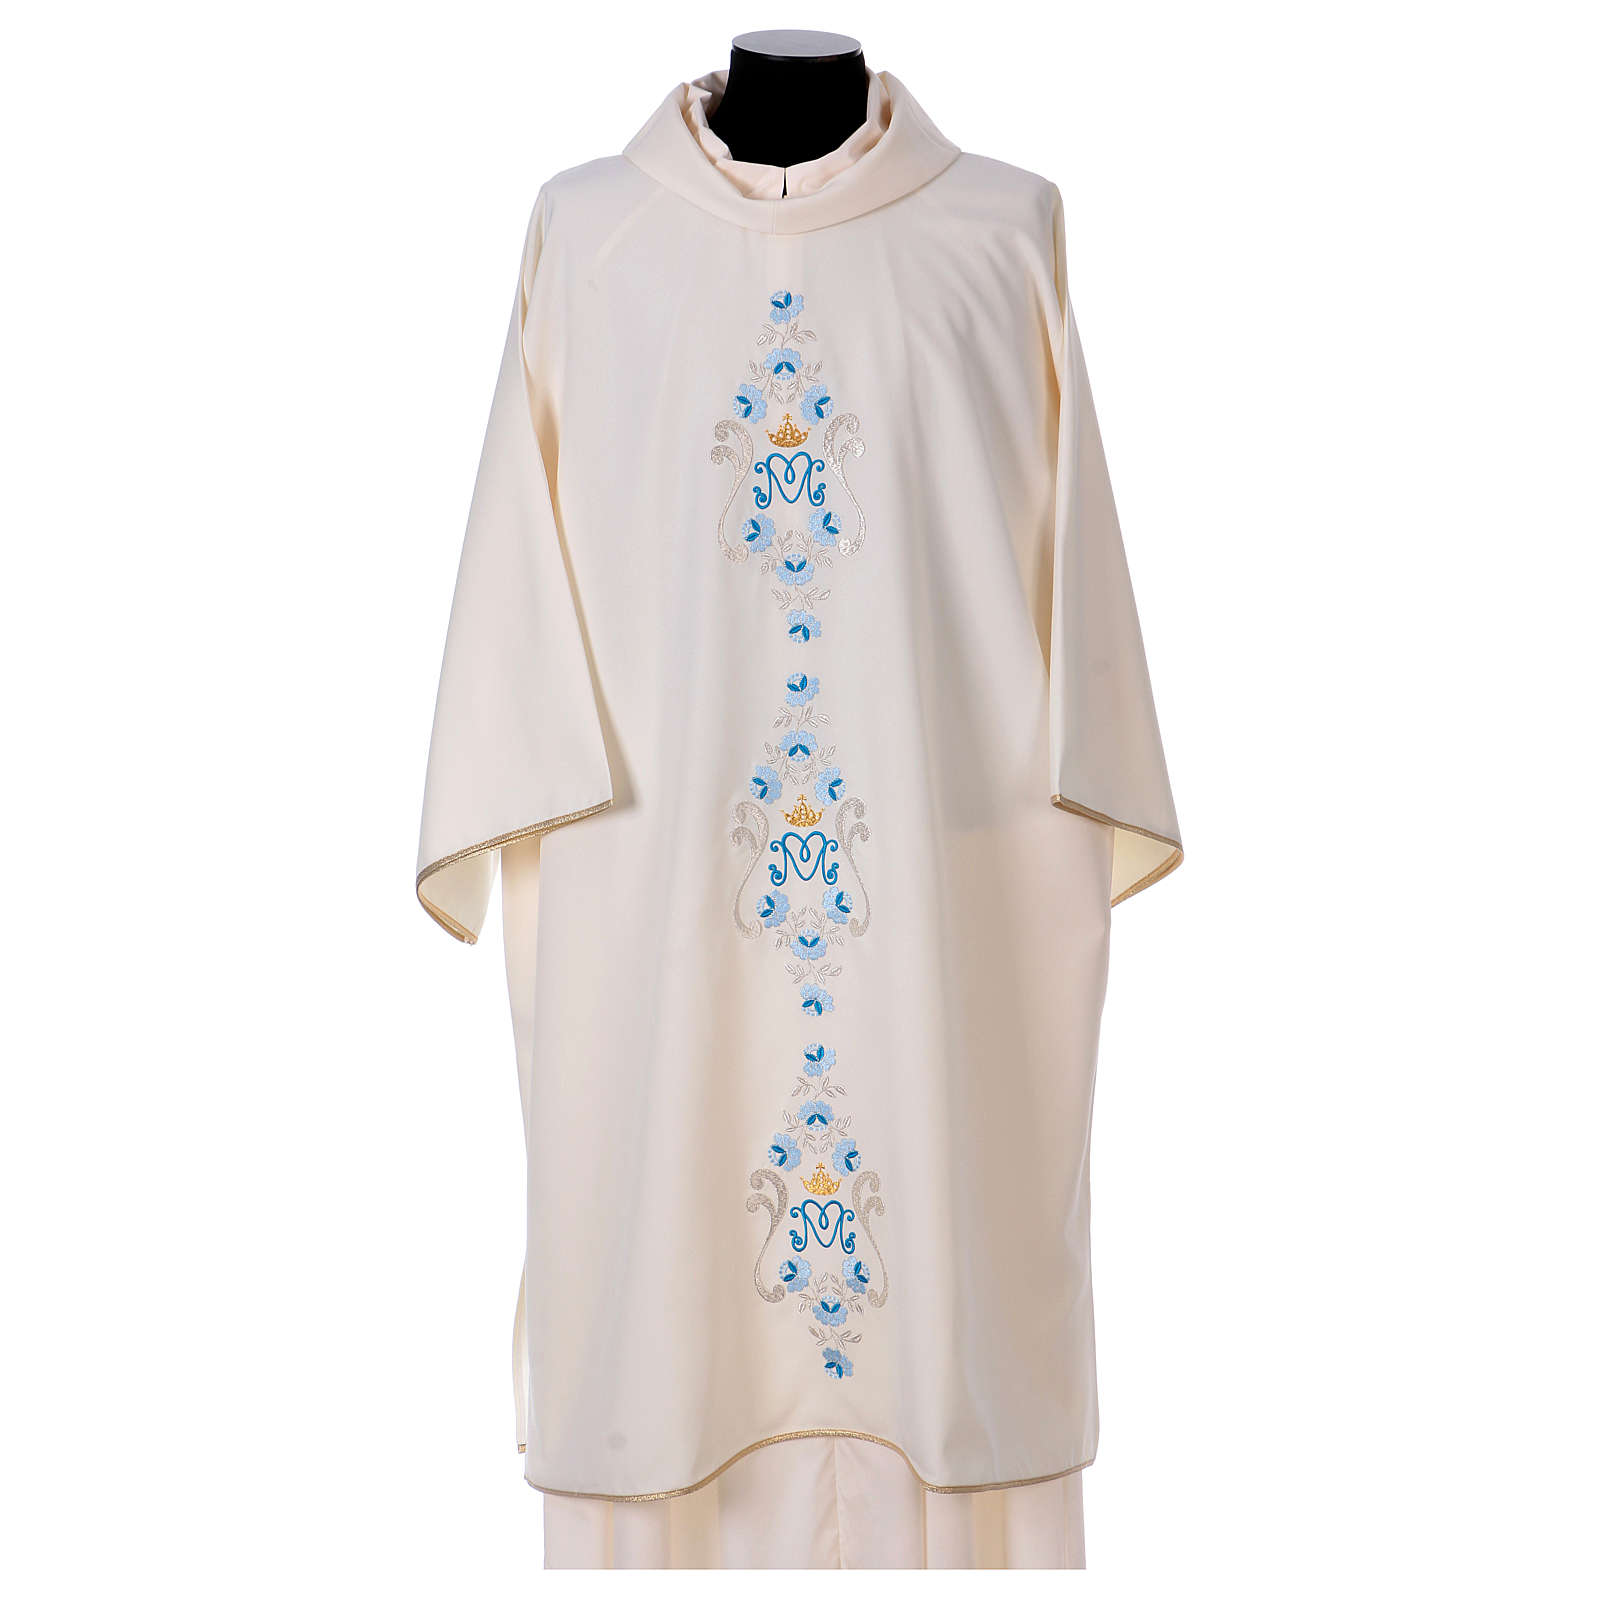 Marian Dalmatic with daisies embroidery on front and back made in Vatican fabric 100% polyester 4